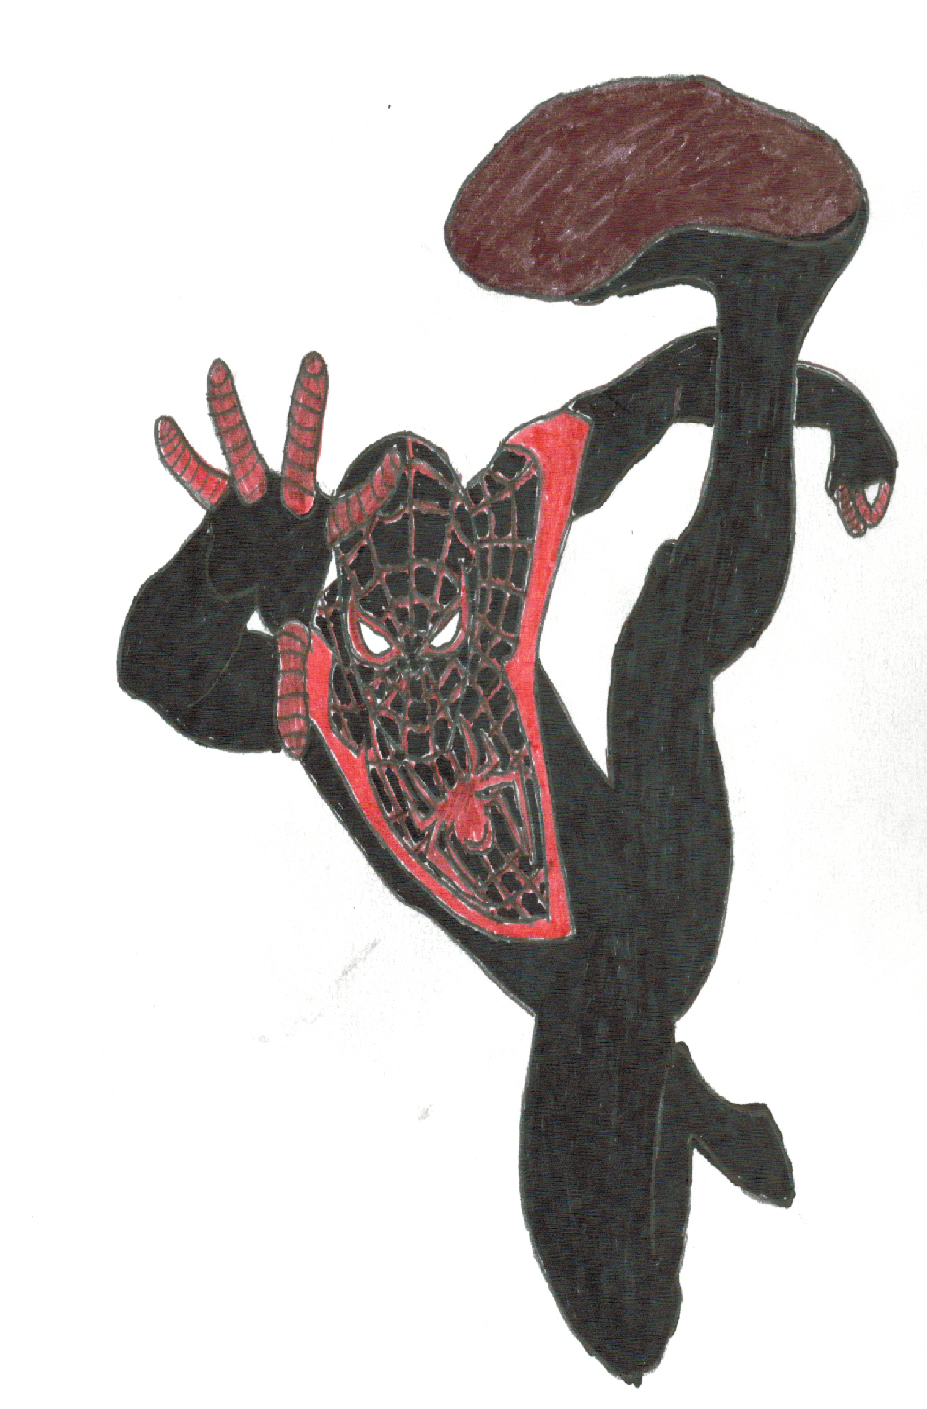 The ultimate Spider-Man by funmiproductions